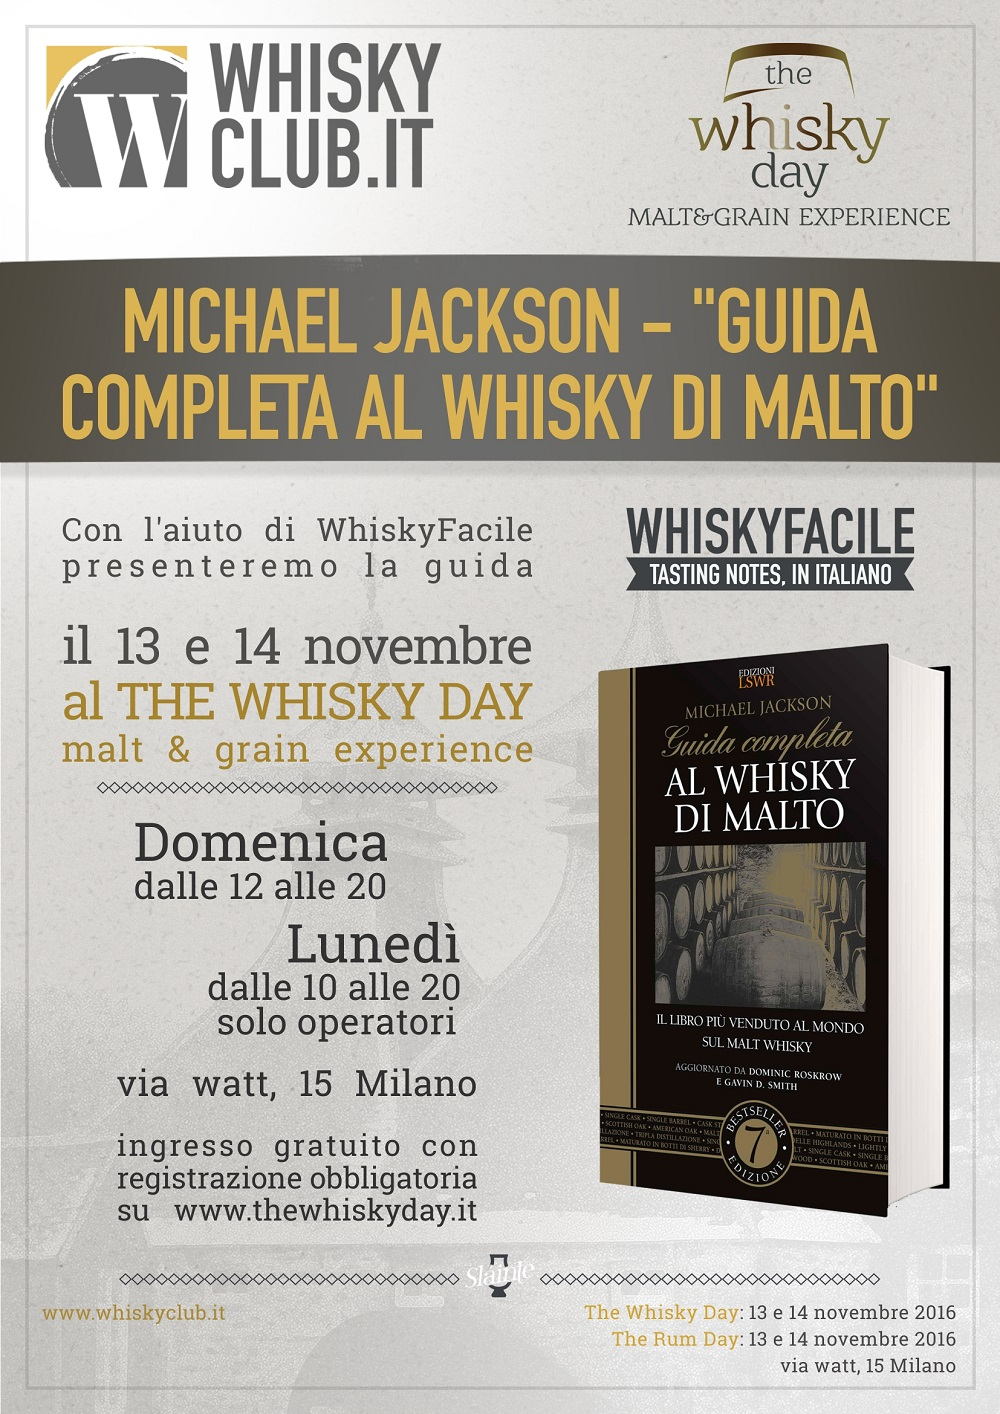 The Whisky Day 2016